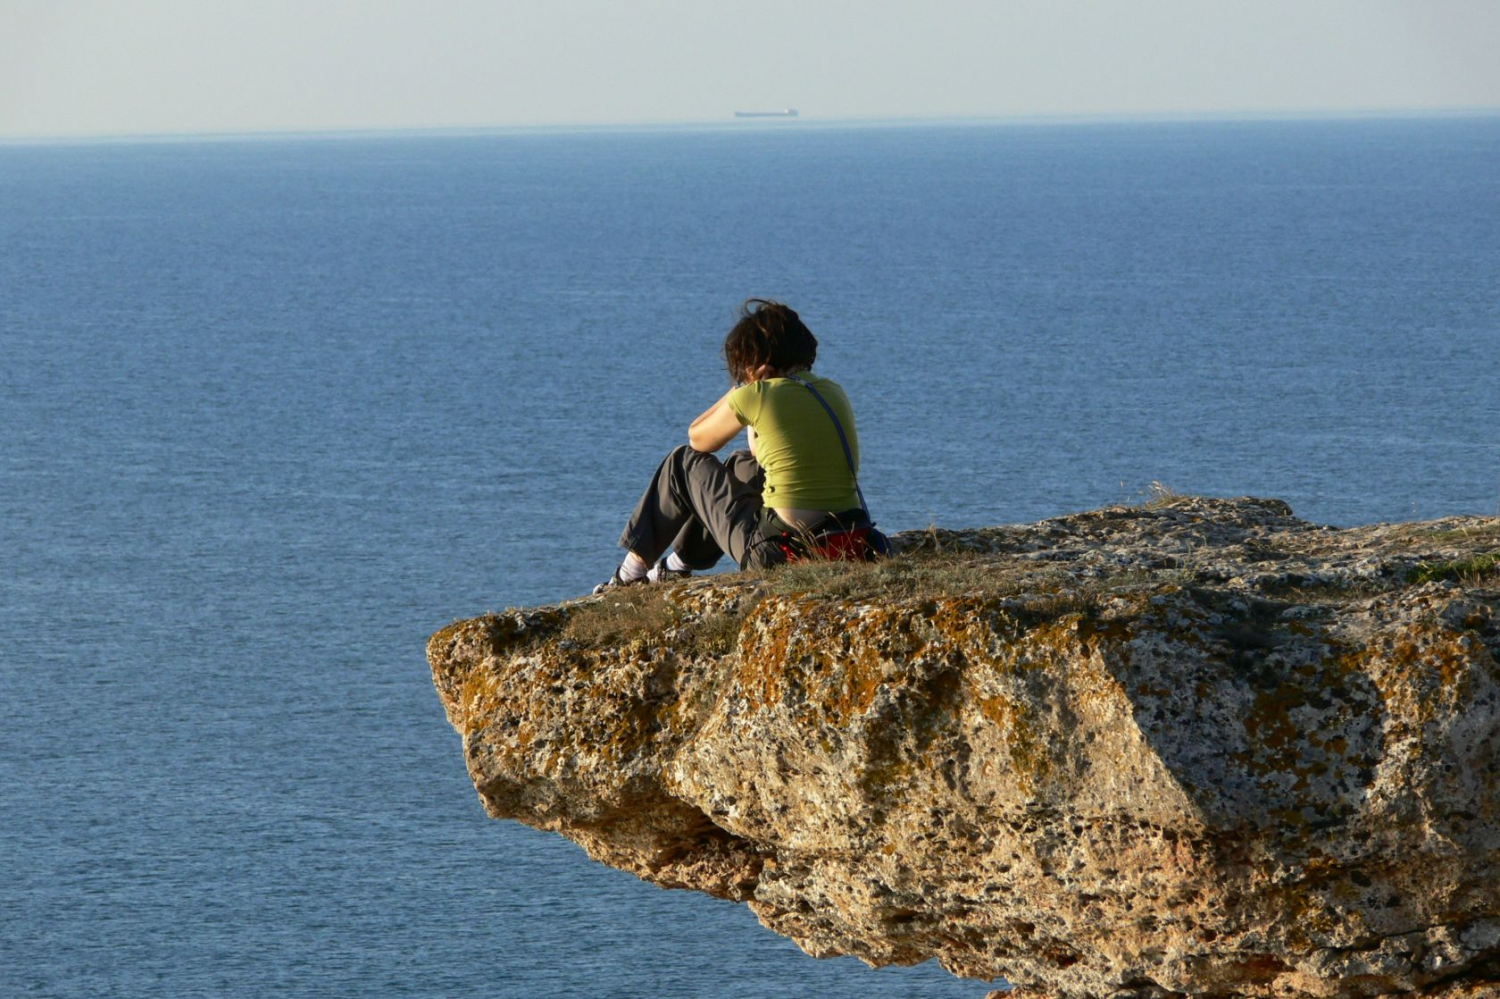 A girl enjoys the sea view from the cliffs